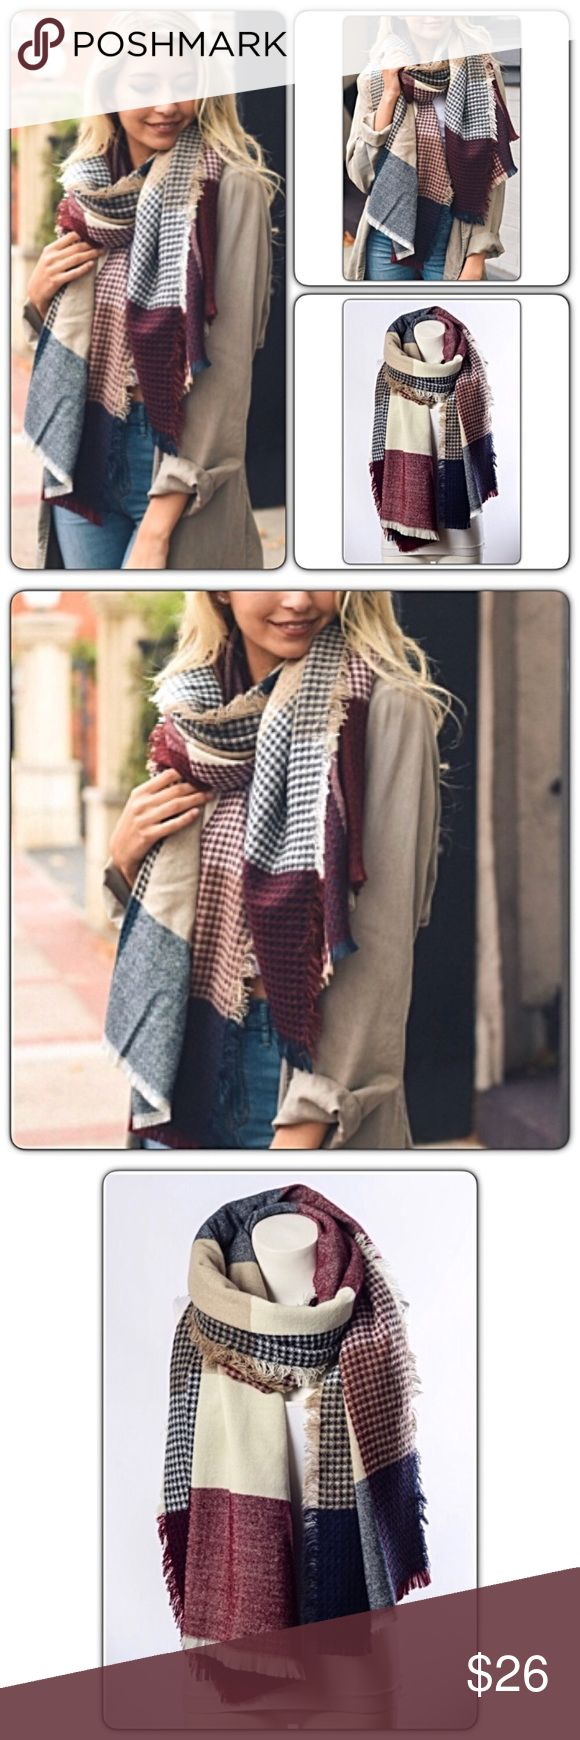 """Beautiful Plaid Waffle Knit Blanket Scarf Wrap Look gorgeous & stay warm this season in this beautiful plaid waffle knit blanket scarf. Makes a great gift. Burgundy, navy, tan & cream 100% acrylic with frayed hem. 79"""" x 28"""" Accessories Scarves & Wraps"""